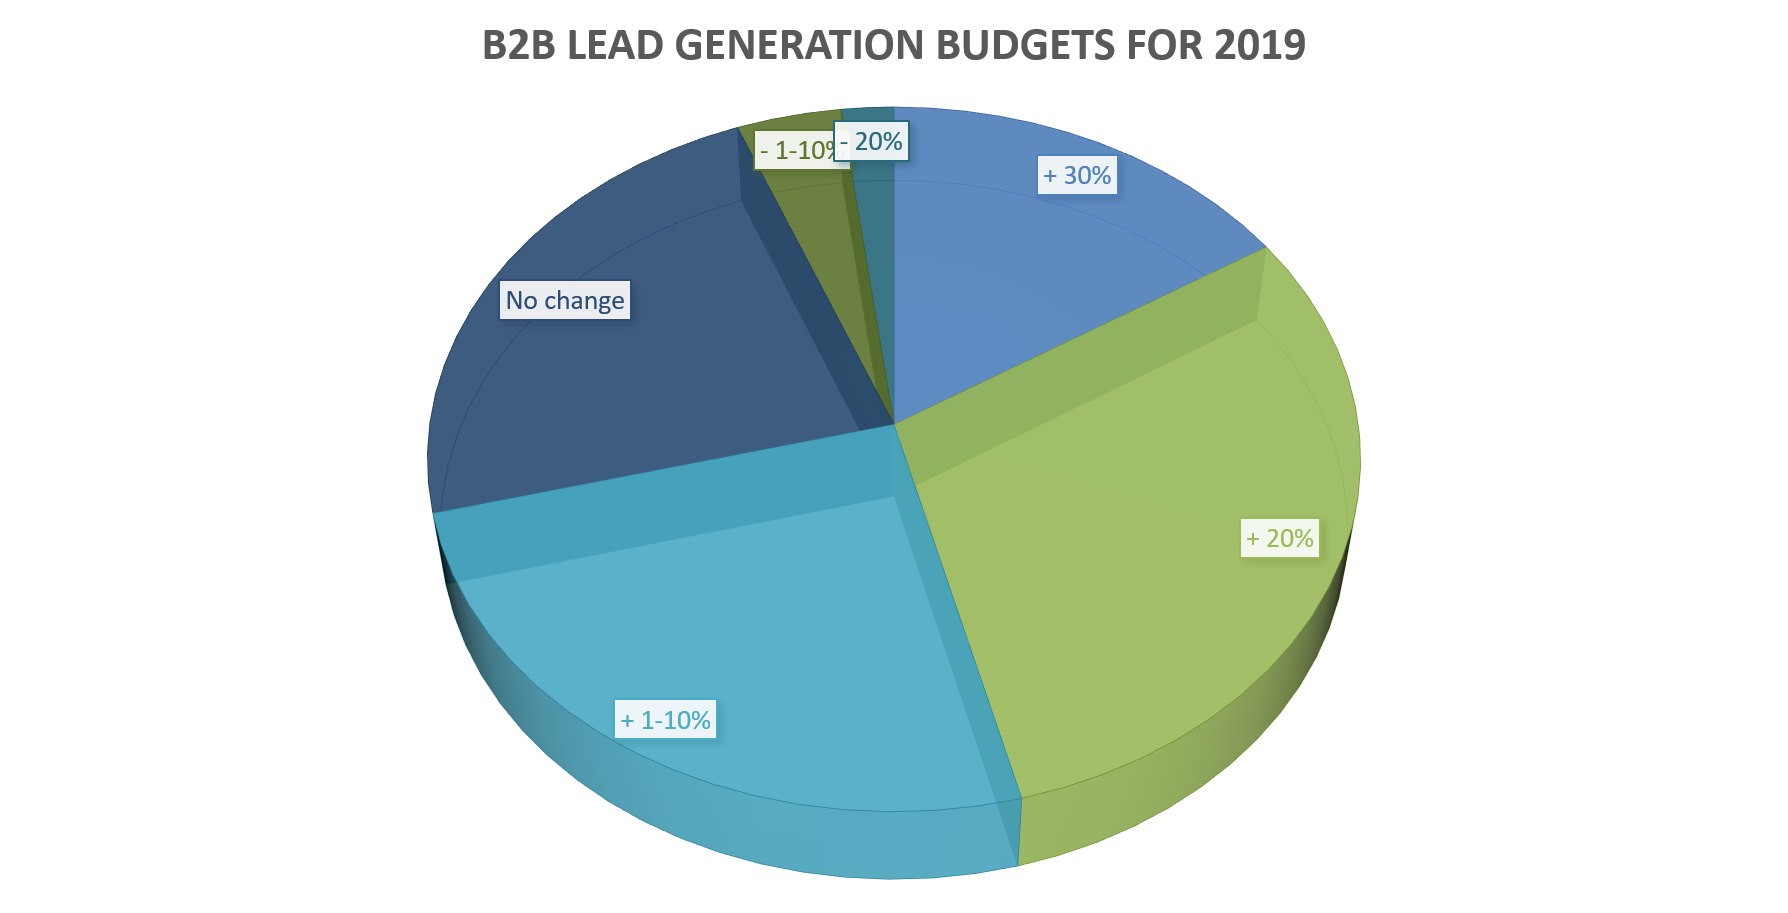 demand generation budget changes for B2B marketers in 2019